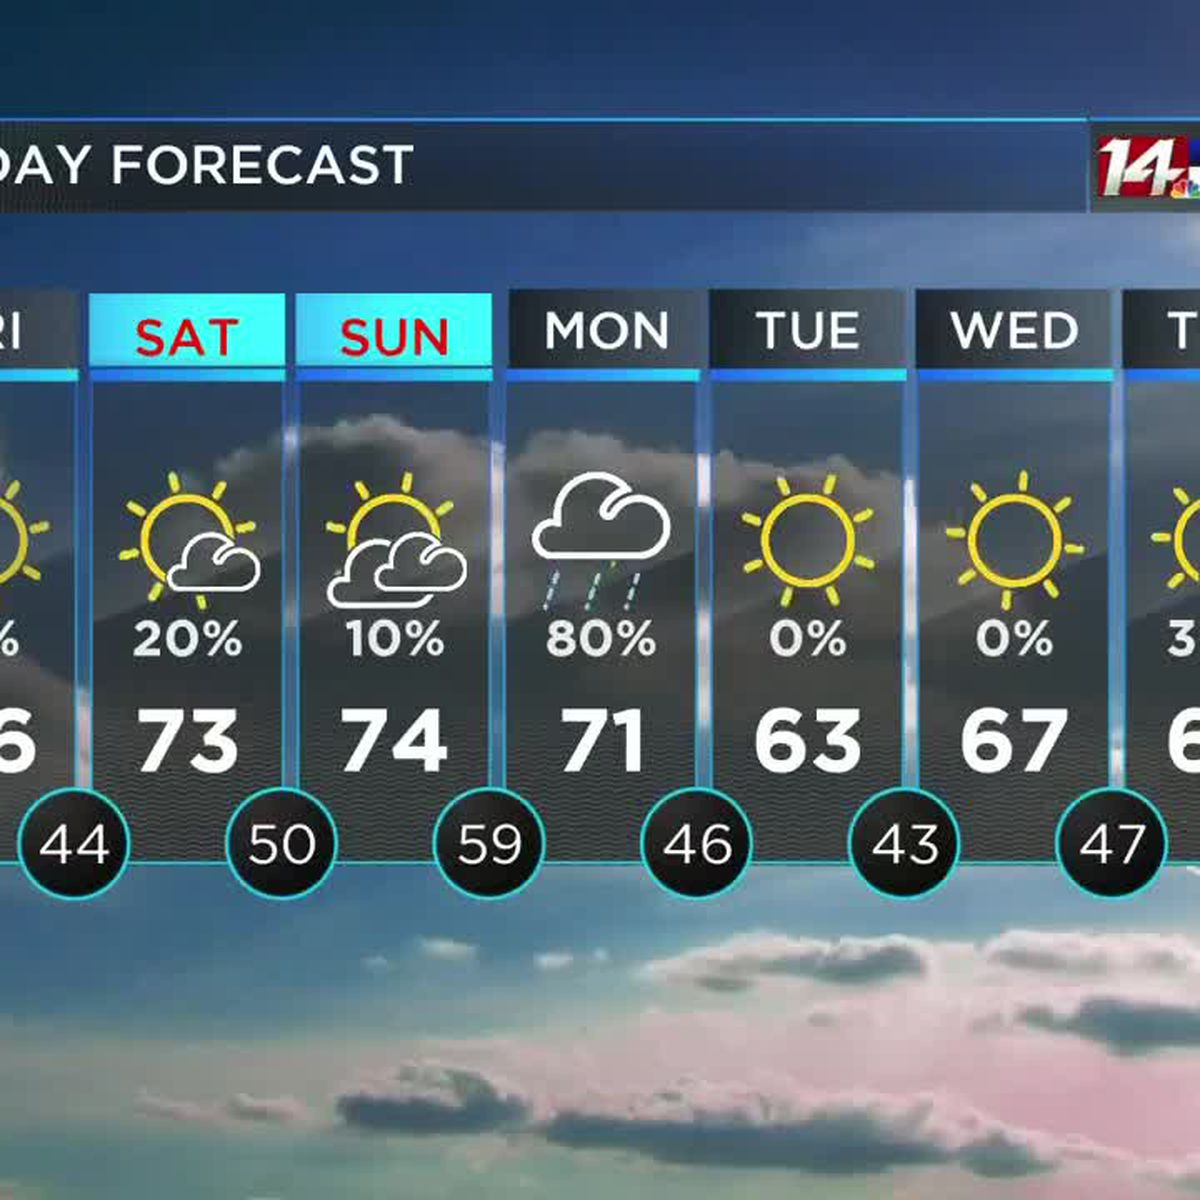 Mostly sunny and milder through the weekend, rain likely Monday